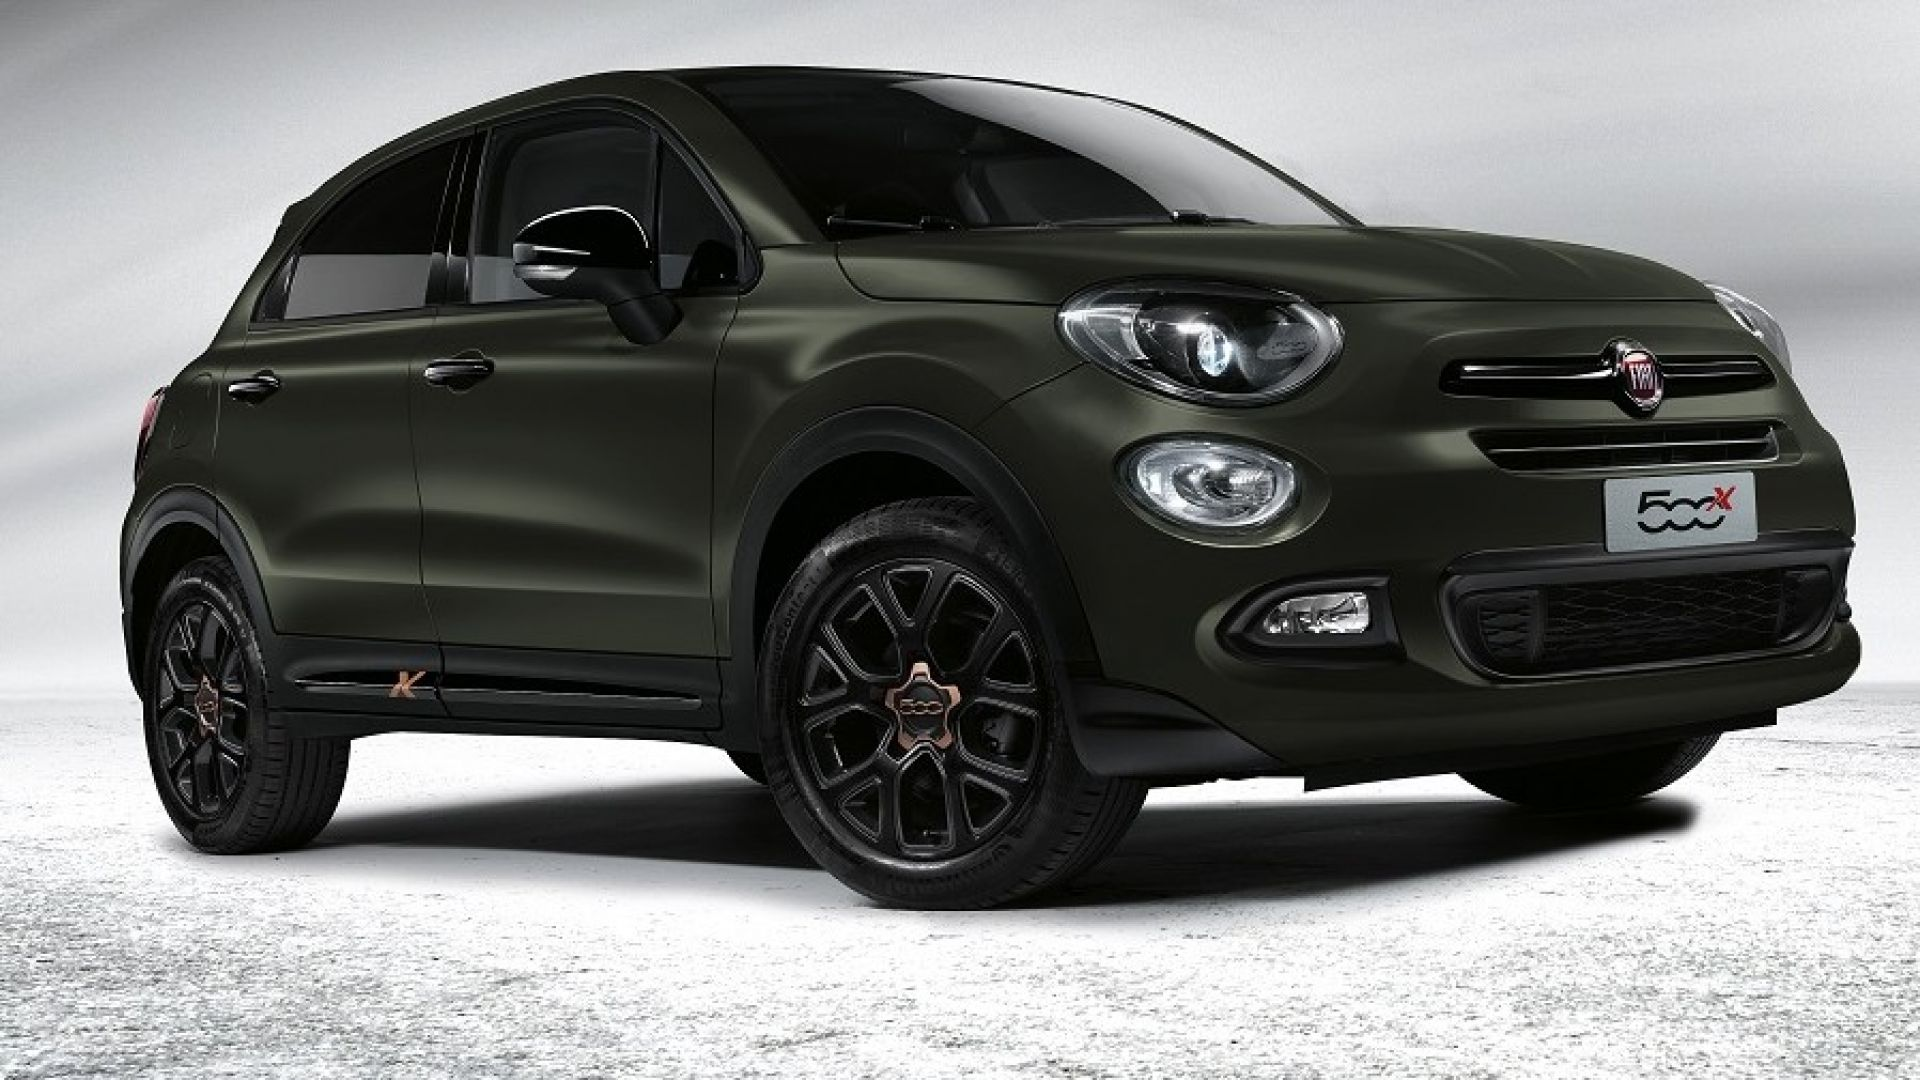 fiat 500x s design la serie speciale a prezzo scontato motorbox. Black Bedroom Furniture Sets. Home Design Ideas